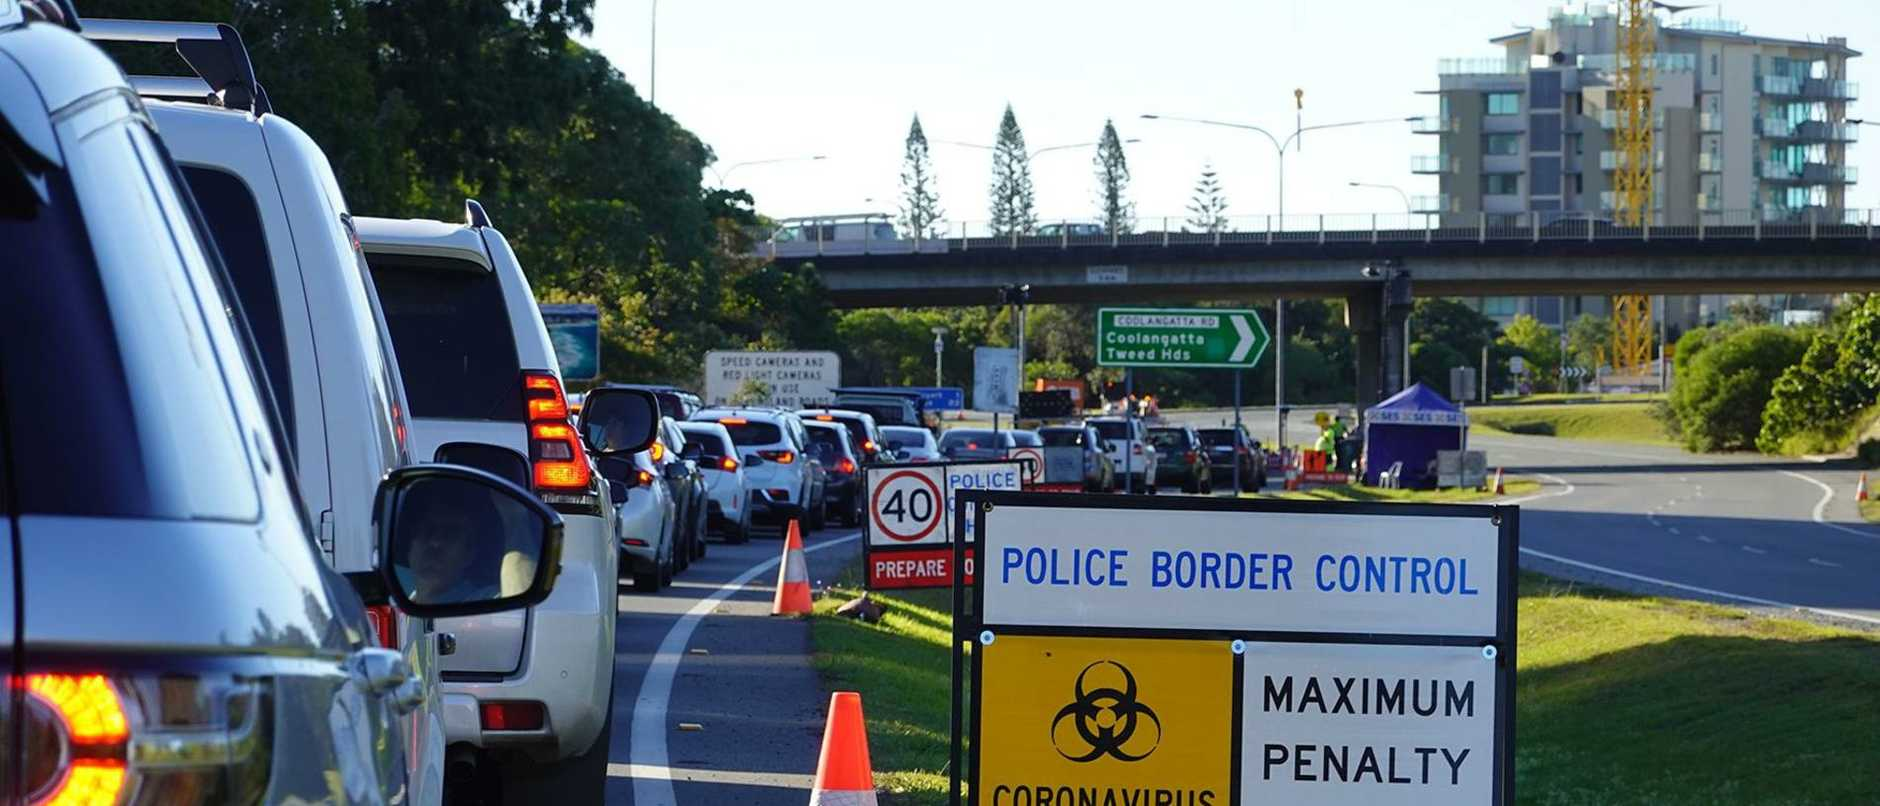 Two people have been charged after border police found a stash of weapons and drugs in their vehicle.